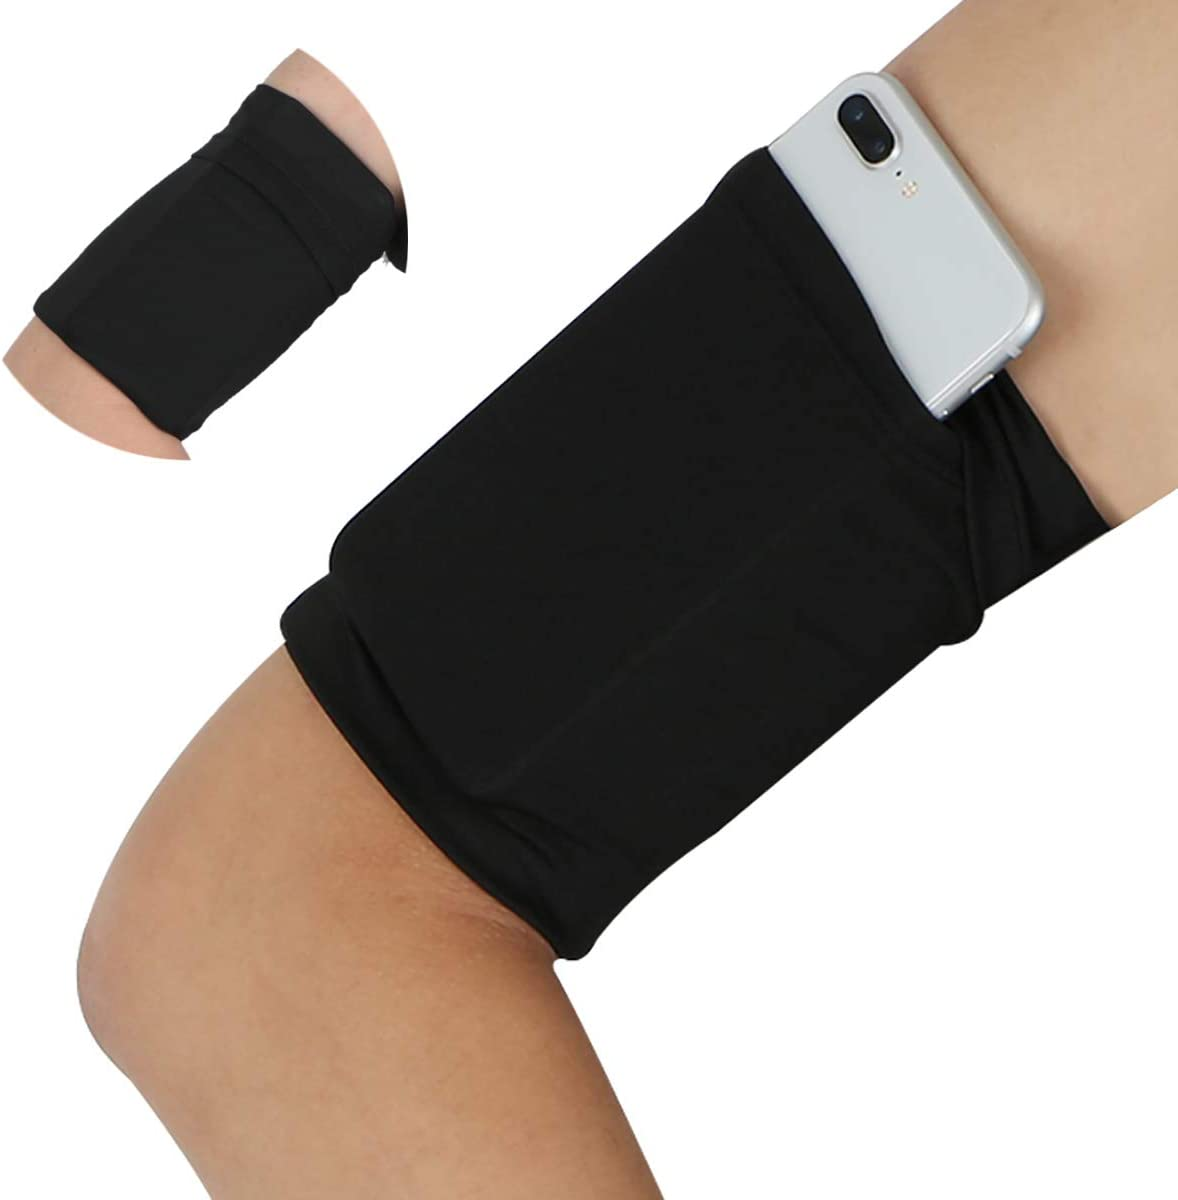 Cellphone Armband Sleeve for Walking Running - Cell Phone Keys Earphone Cards Arm Wrist Band for Compatible with iPhone 6 6S 7 8 X XR XS 11 12 Pro Android Pixel Galaxy Yoga for Women Men - Black/Small